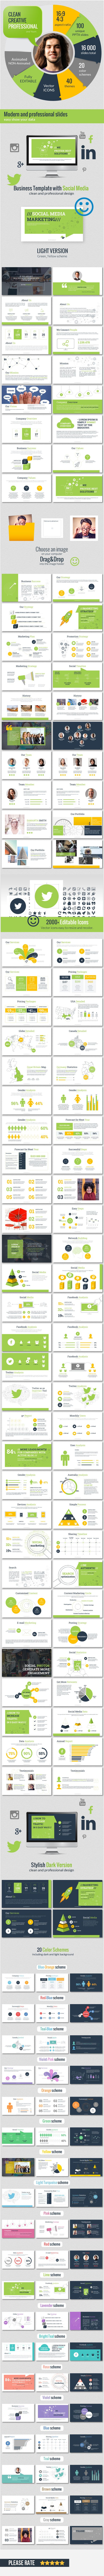 Social Media Deck Presentation Template - Business PowerPoint Templates